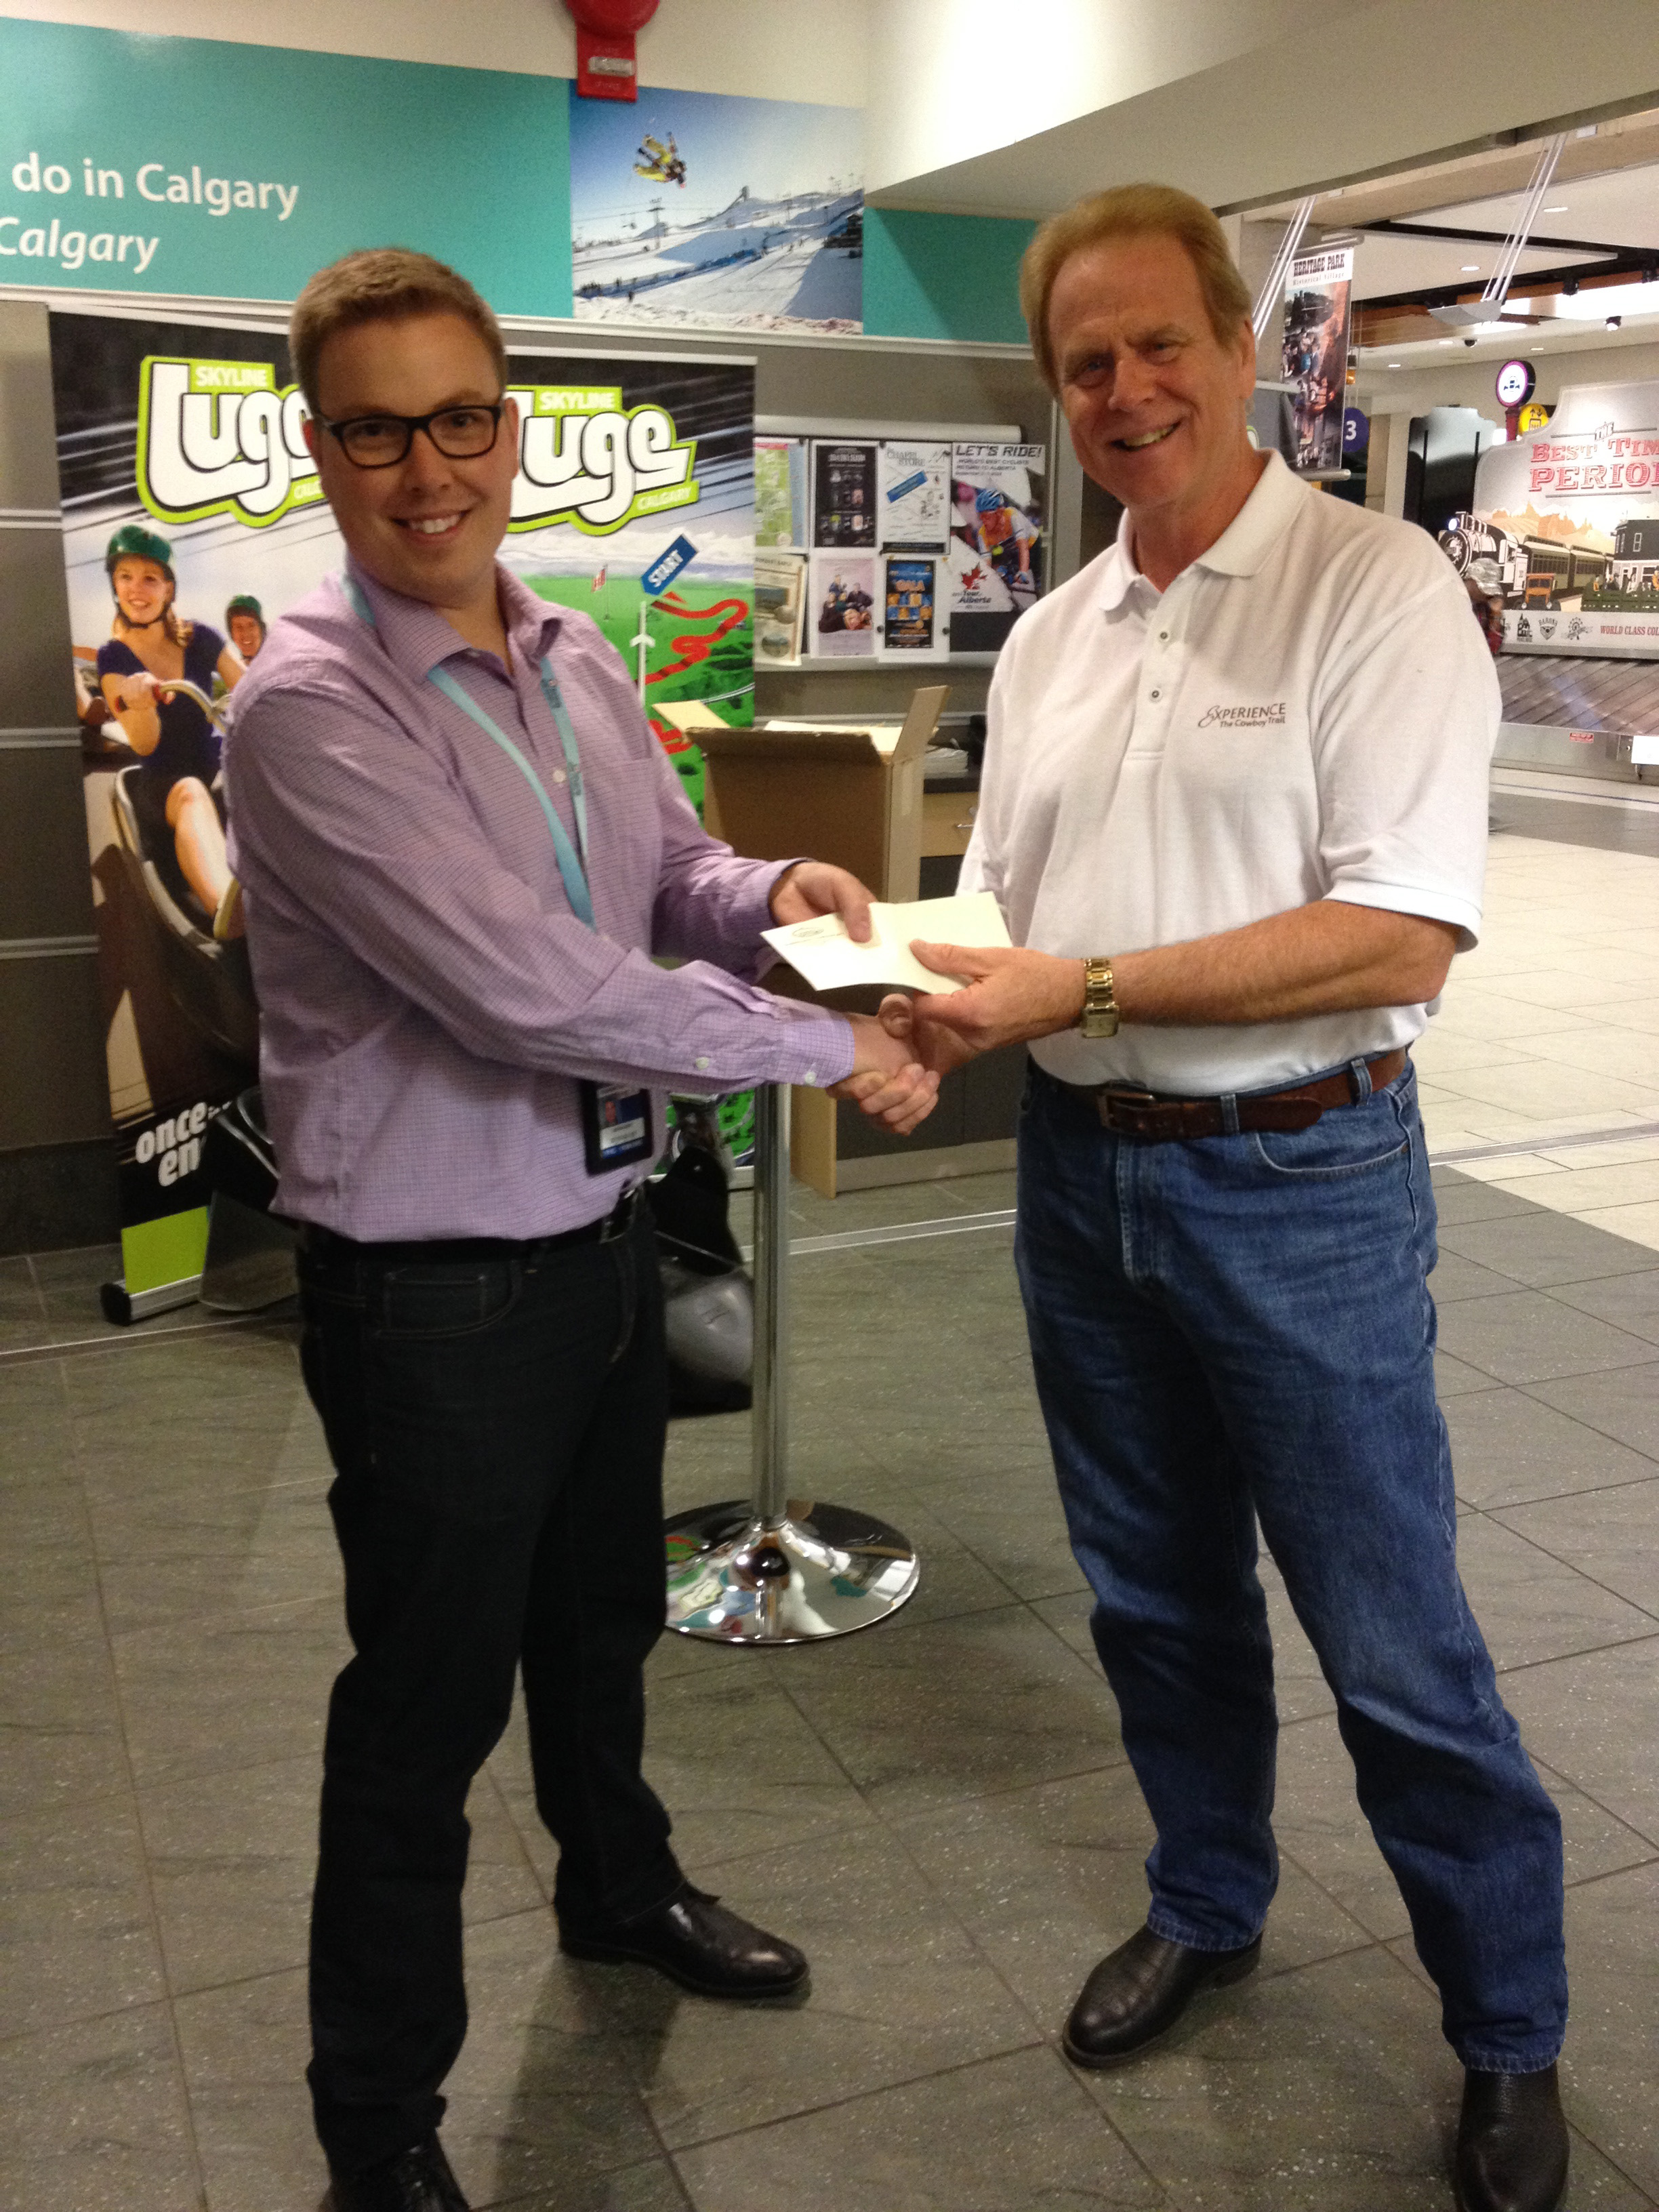 Bob Harris (right)awarding early bird prize to Carl Ceder